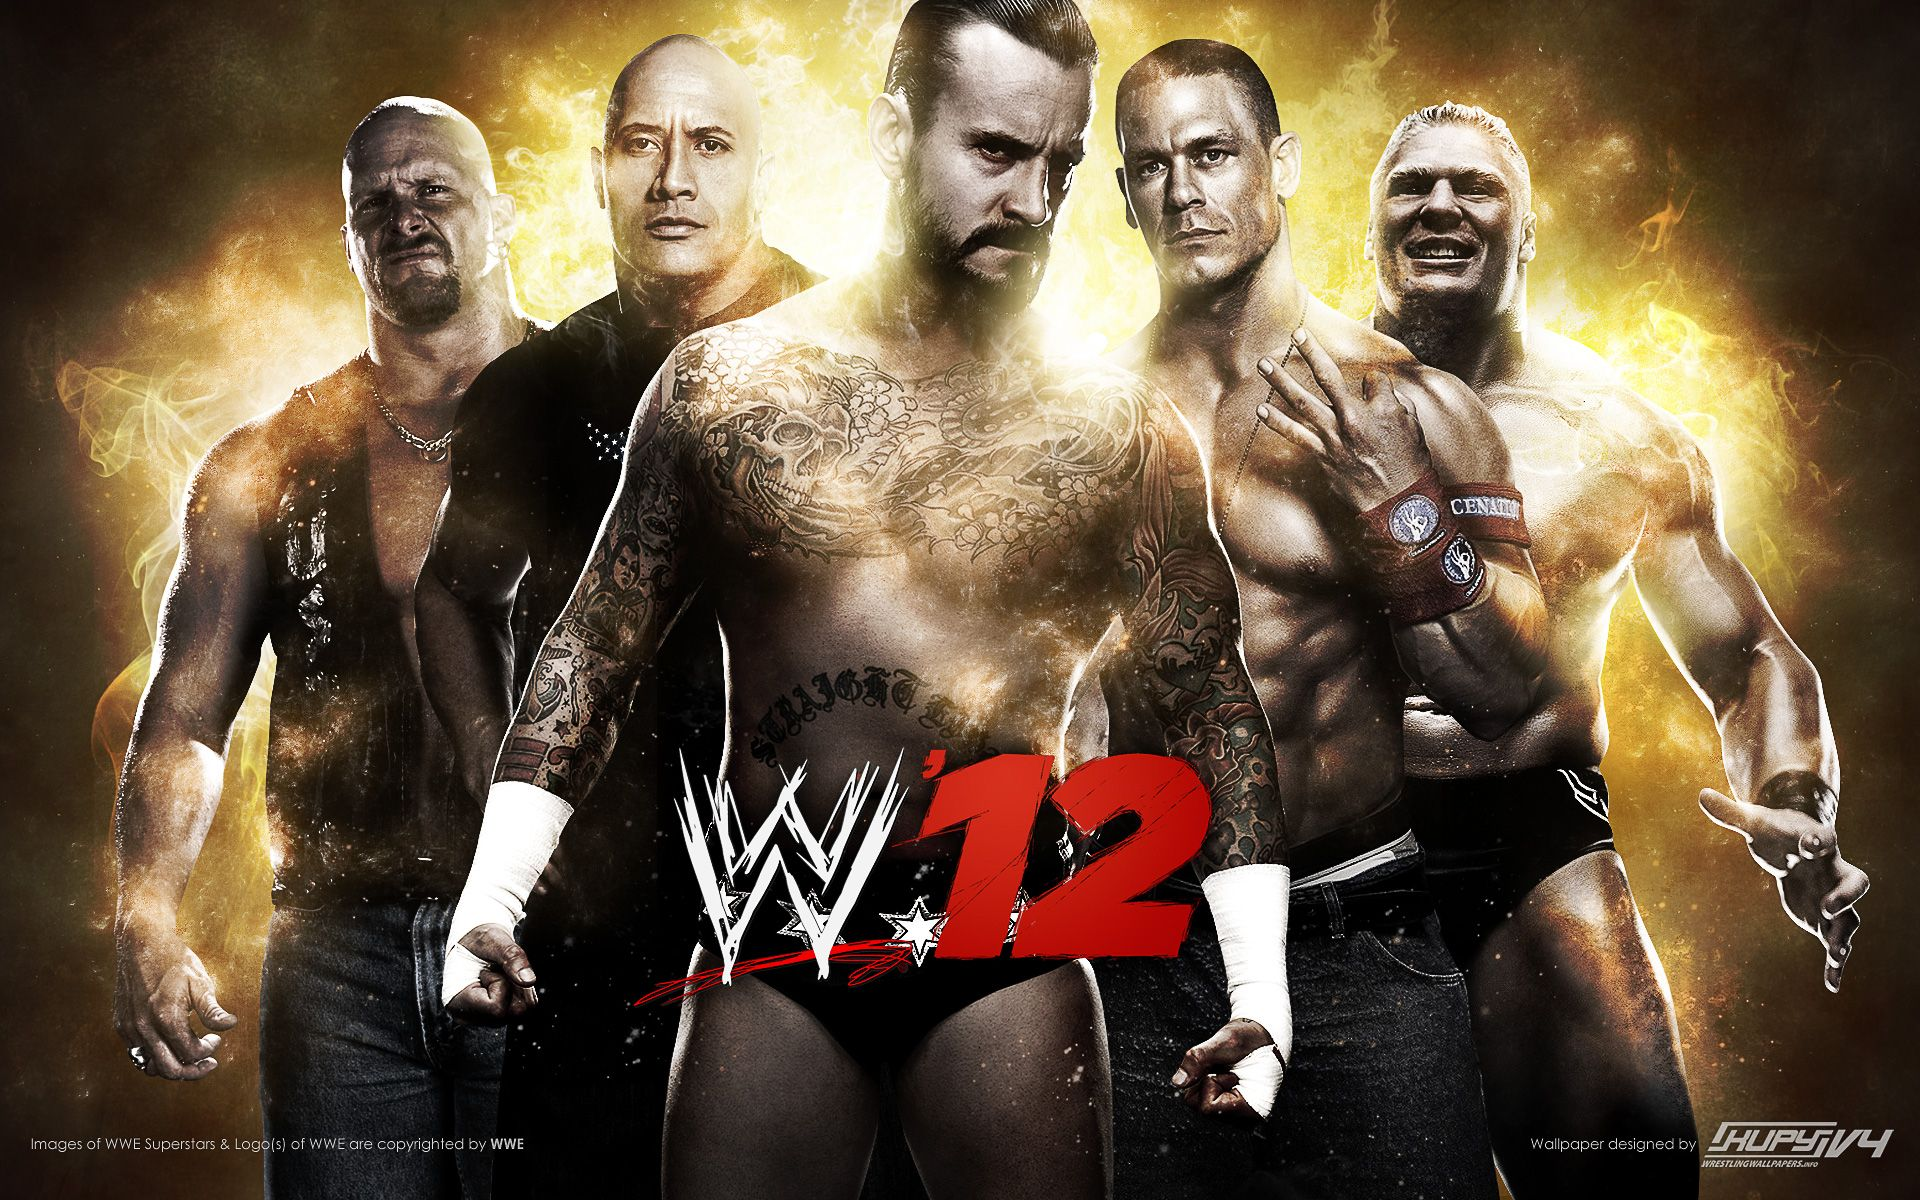 Wwe wallpapers for desktop group